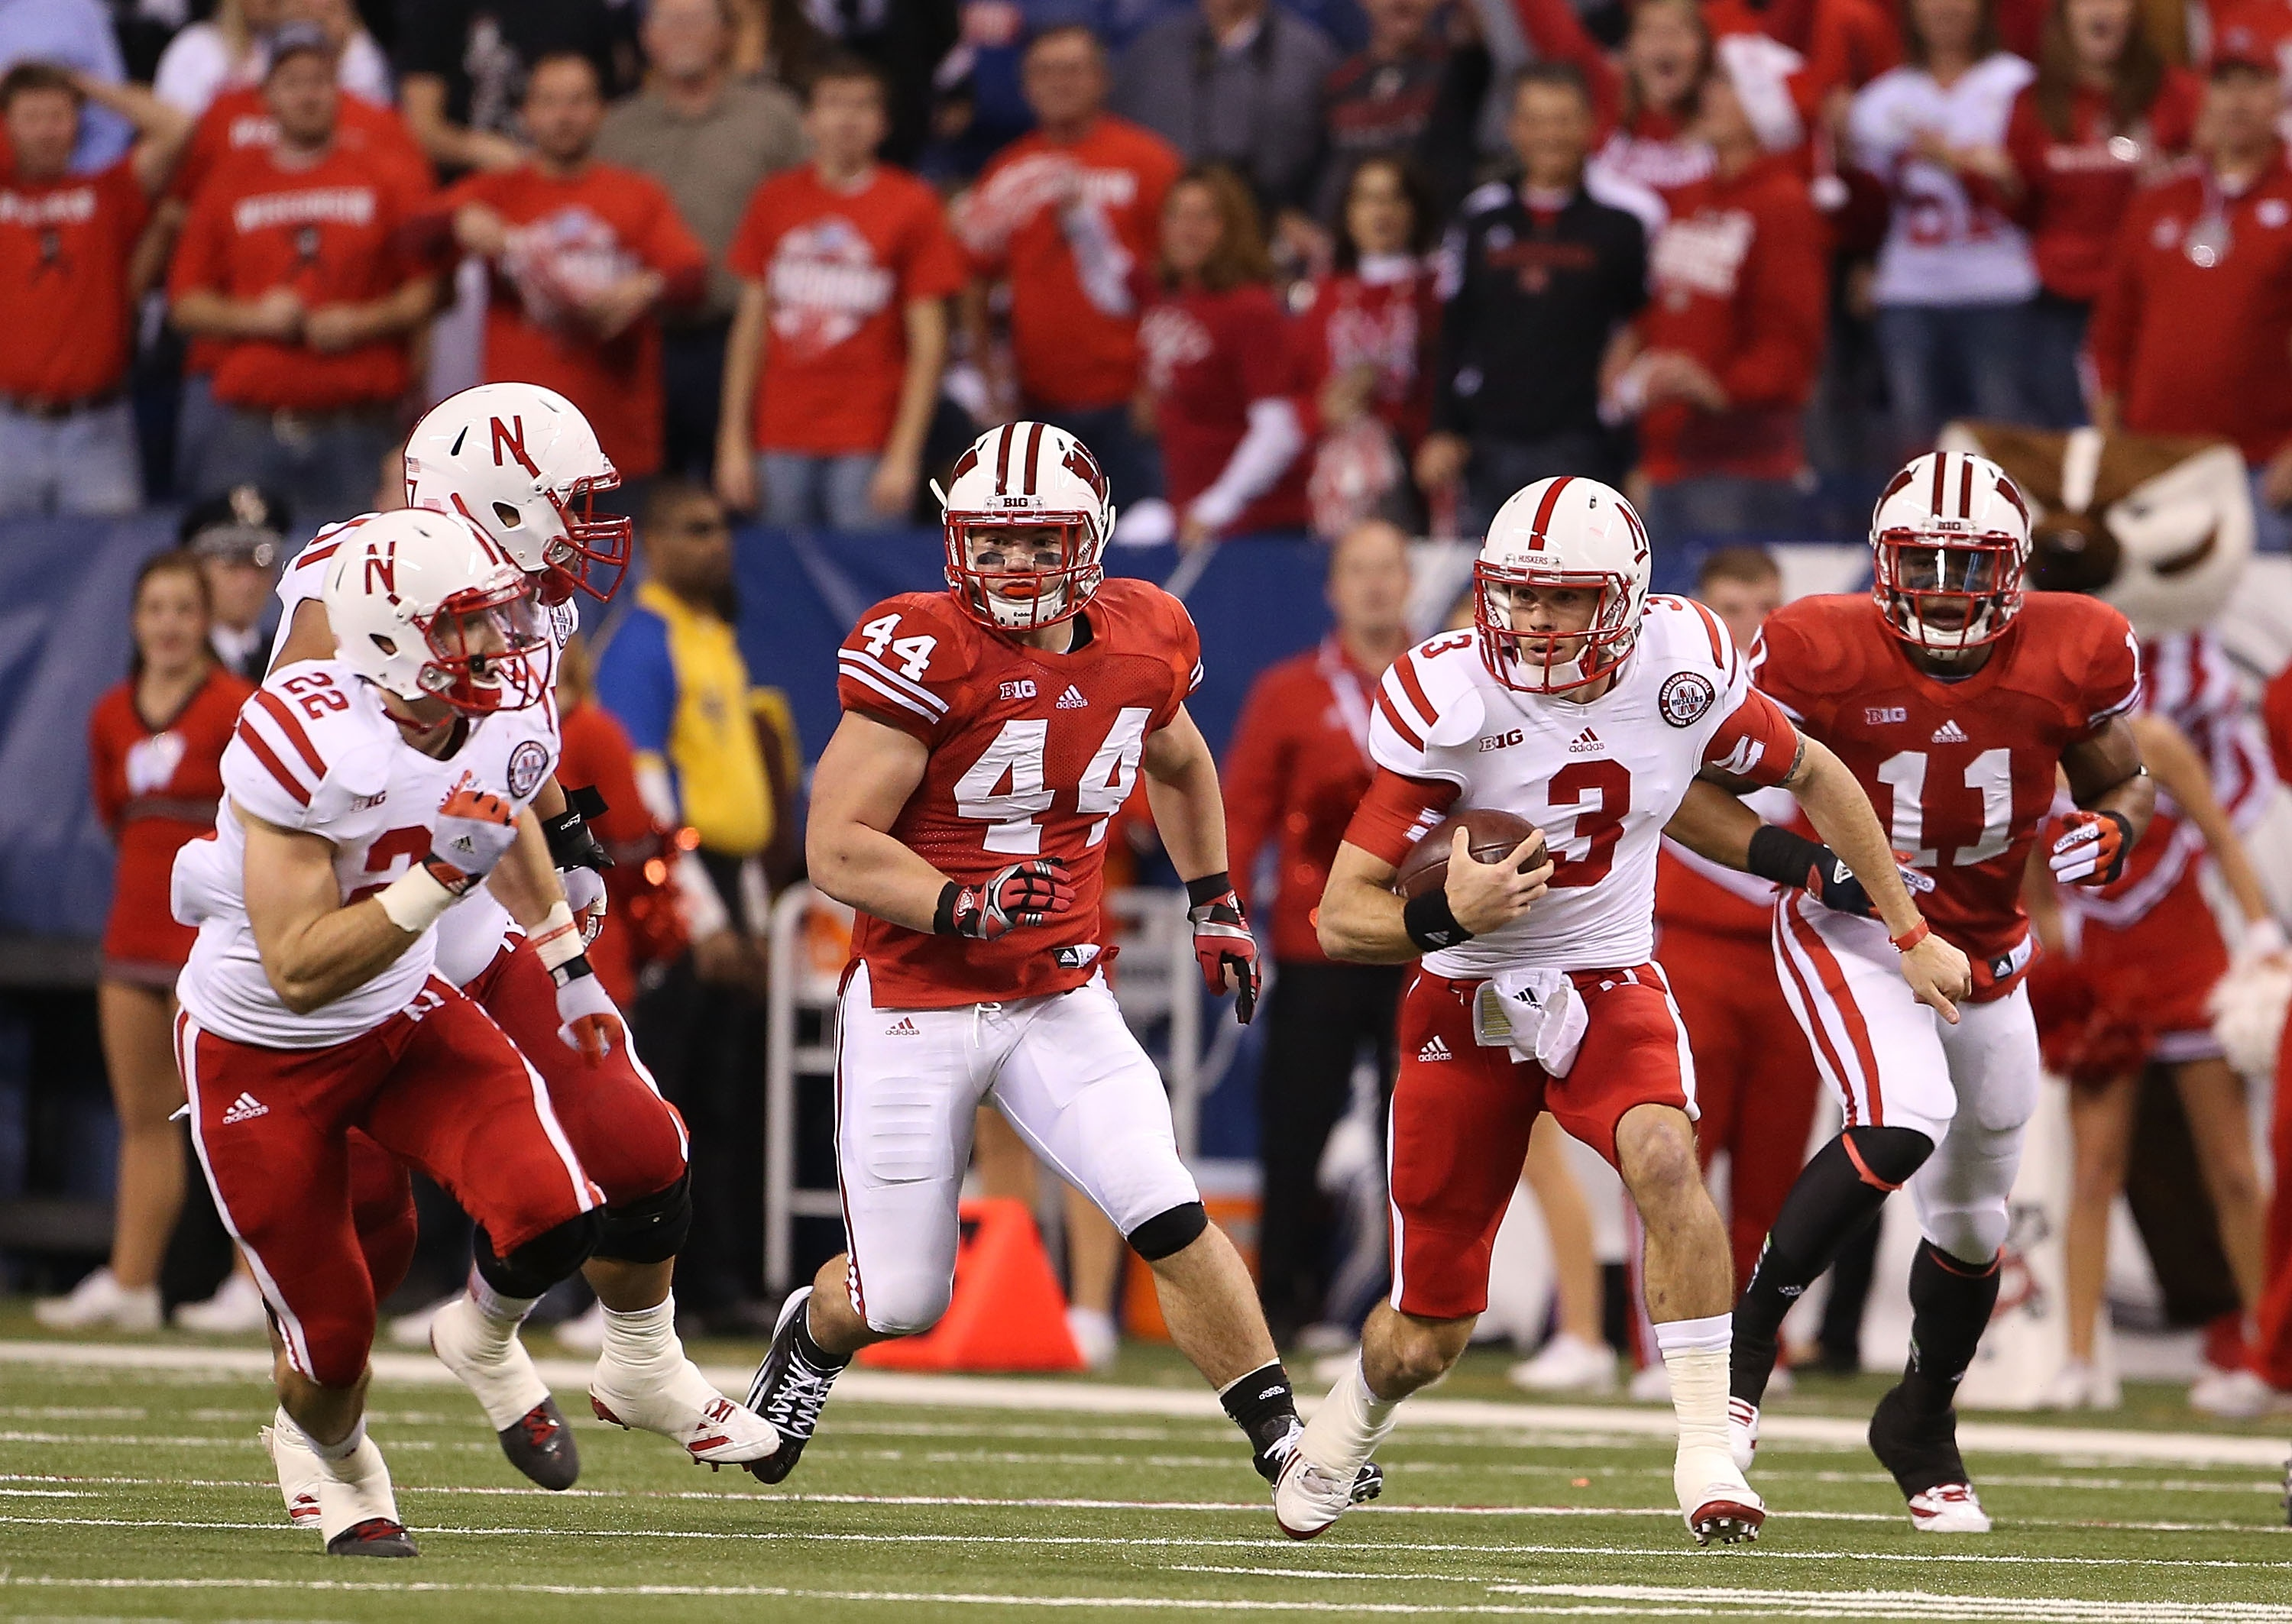 big-ten-championship-nebraska-v-20121201